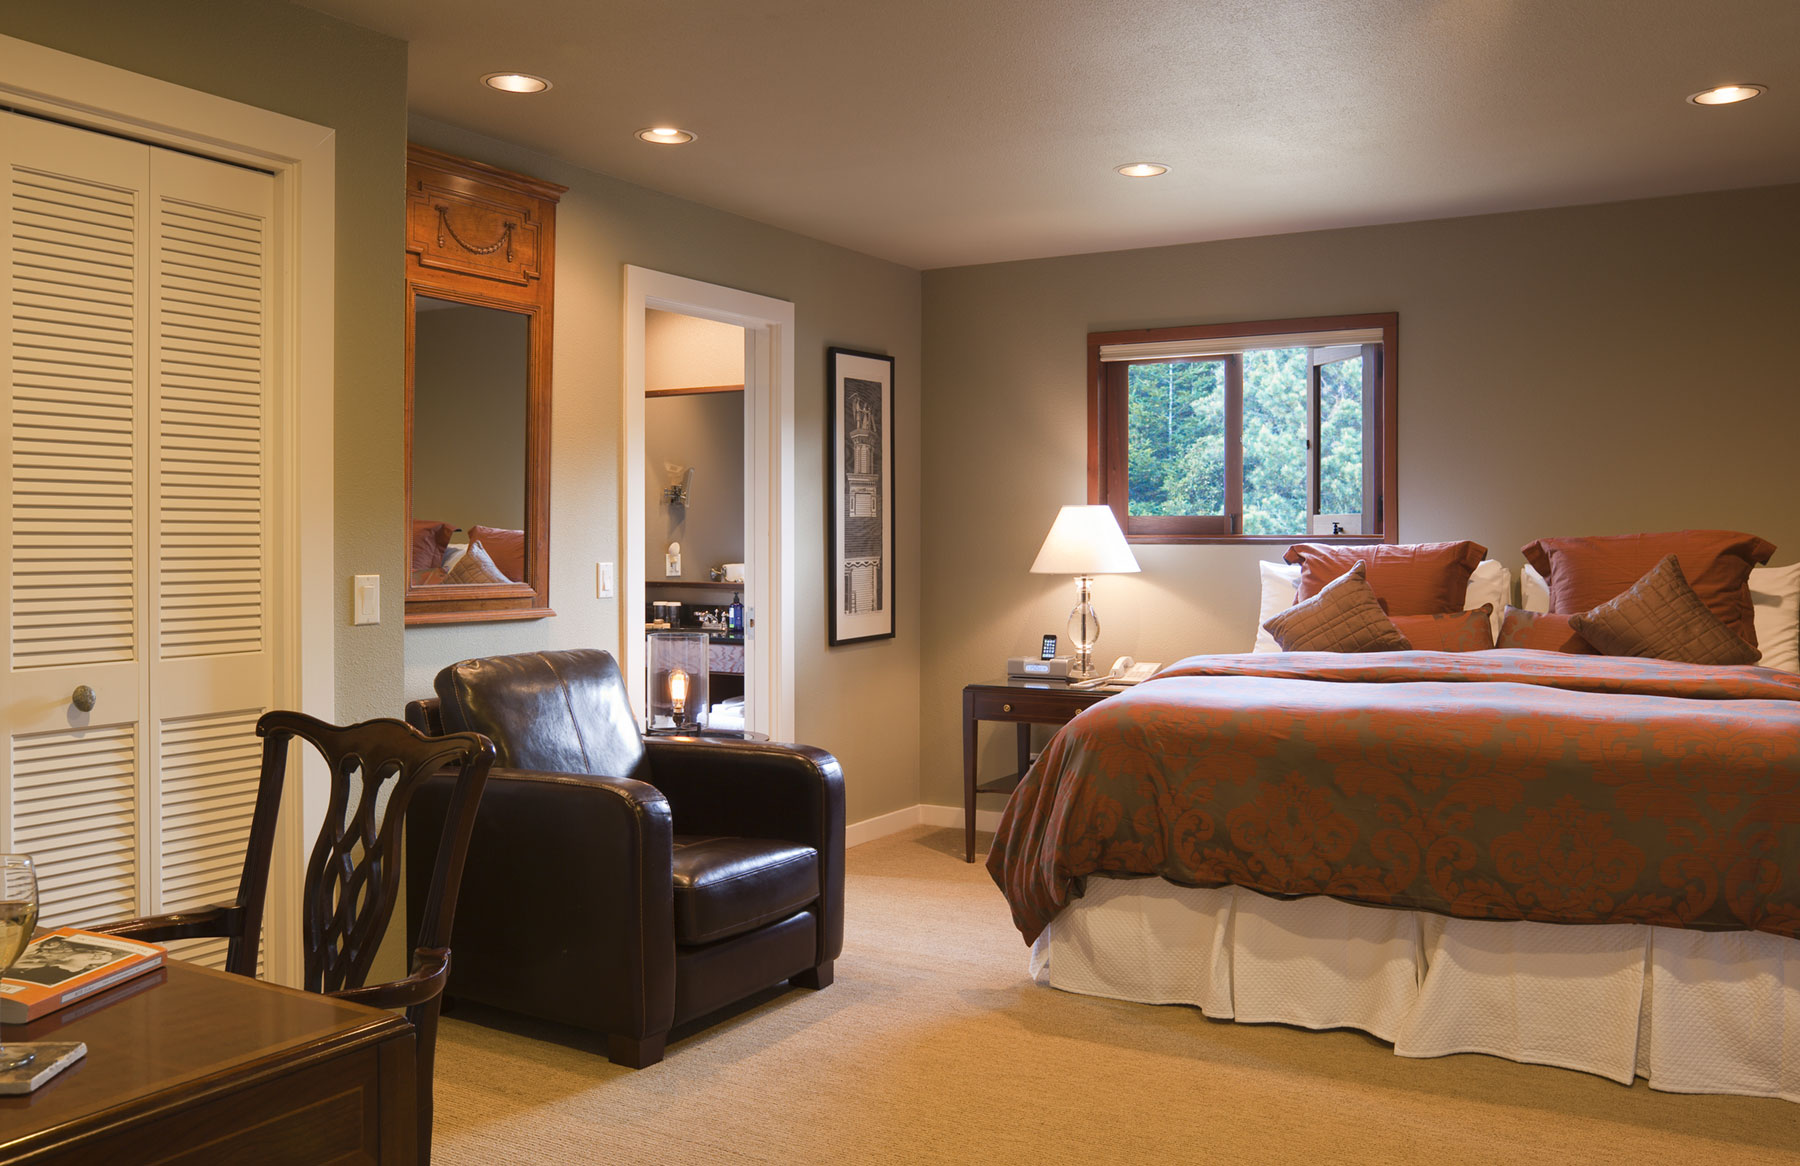 The second room in the Meadowview suite contains a king bed, desk, and leather chair.